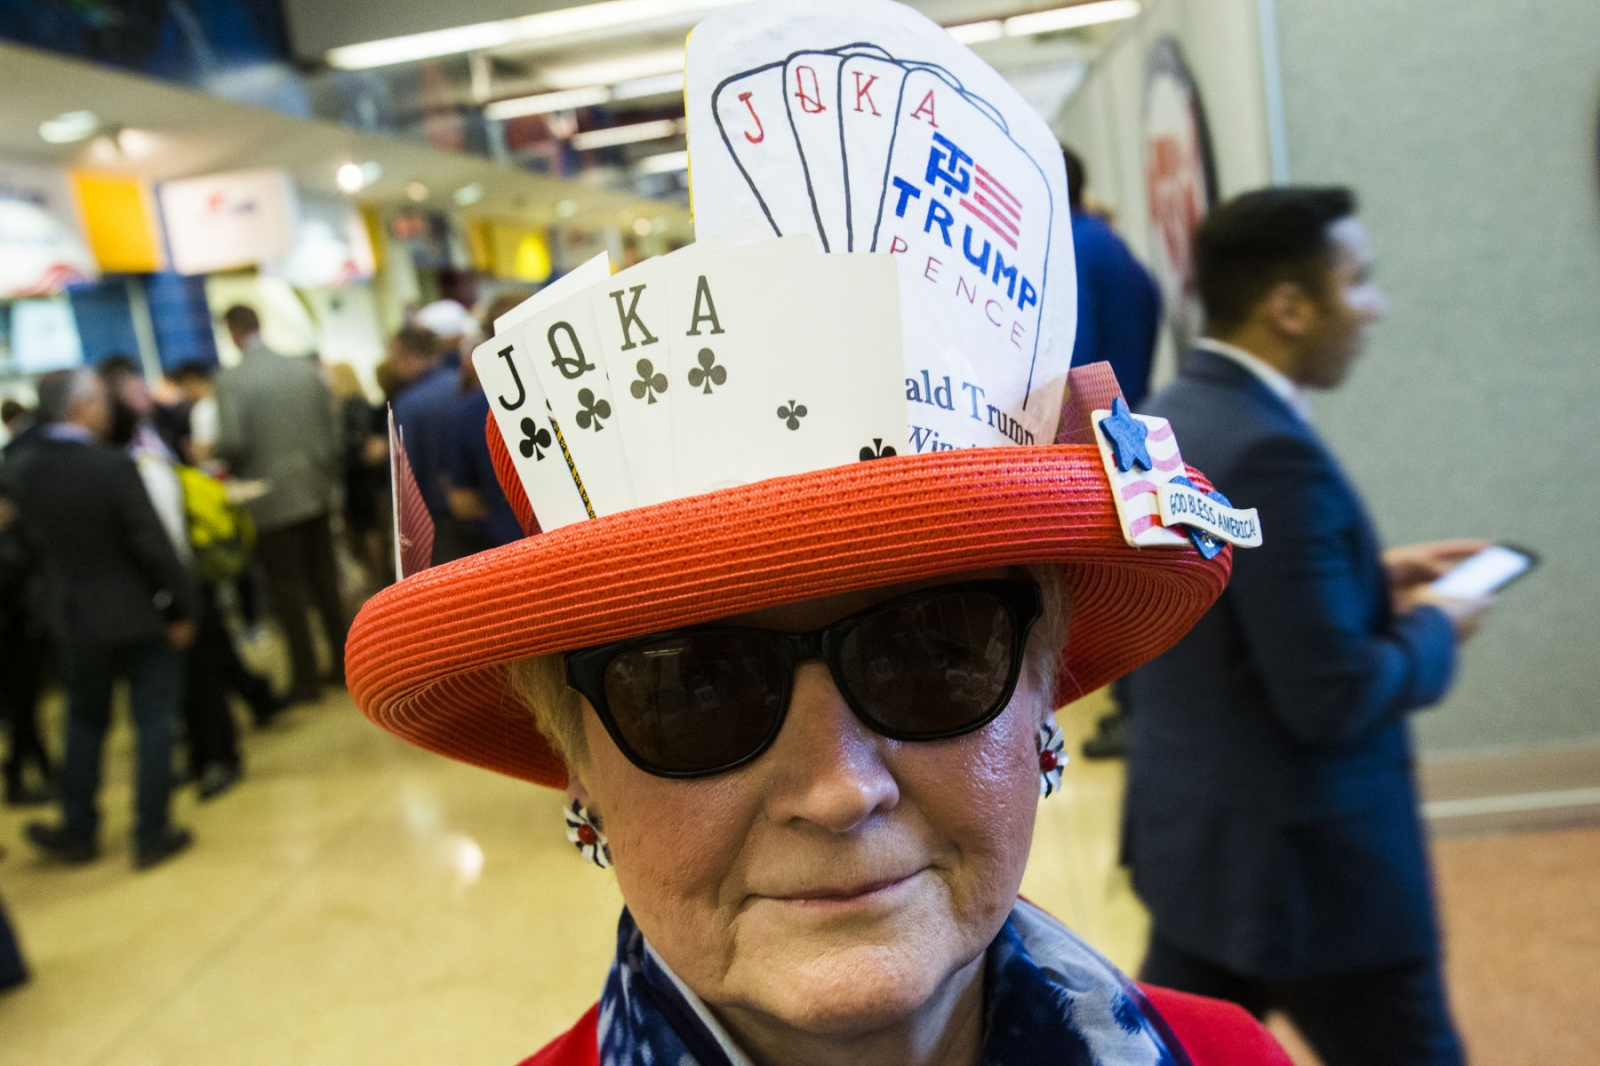 Trump supporter inside the Republication National Convention in Cleveland, Ohio. July 19, 2016